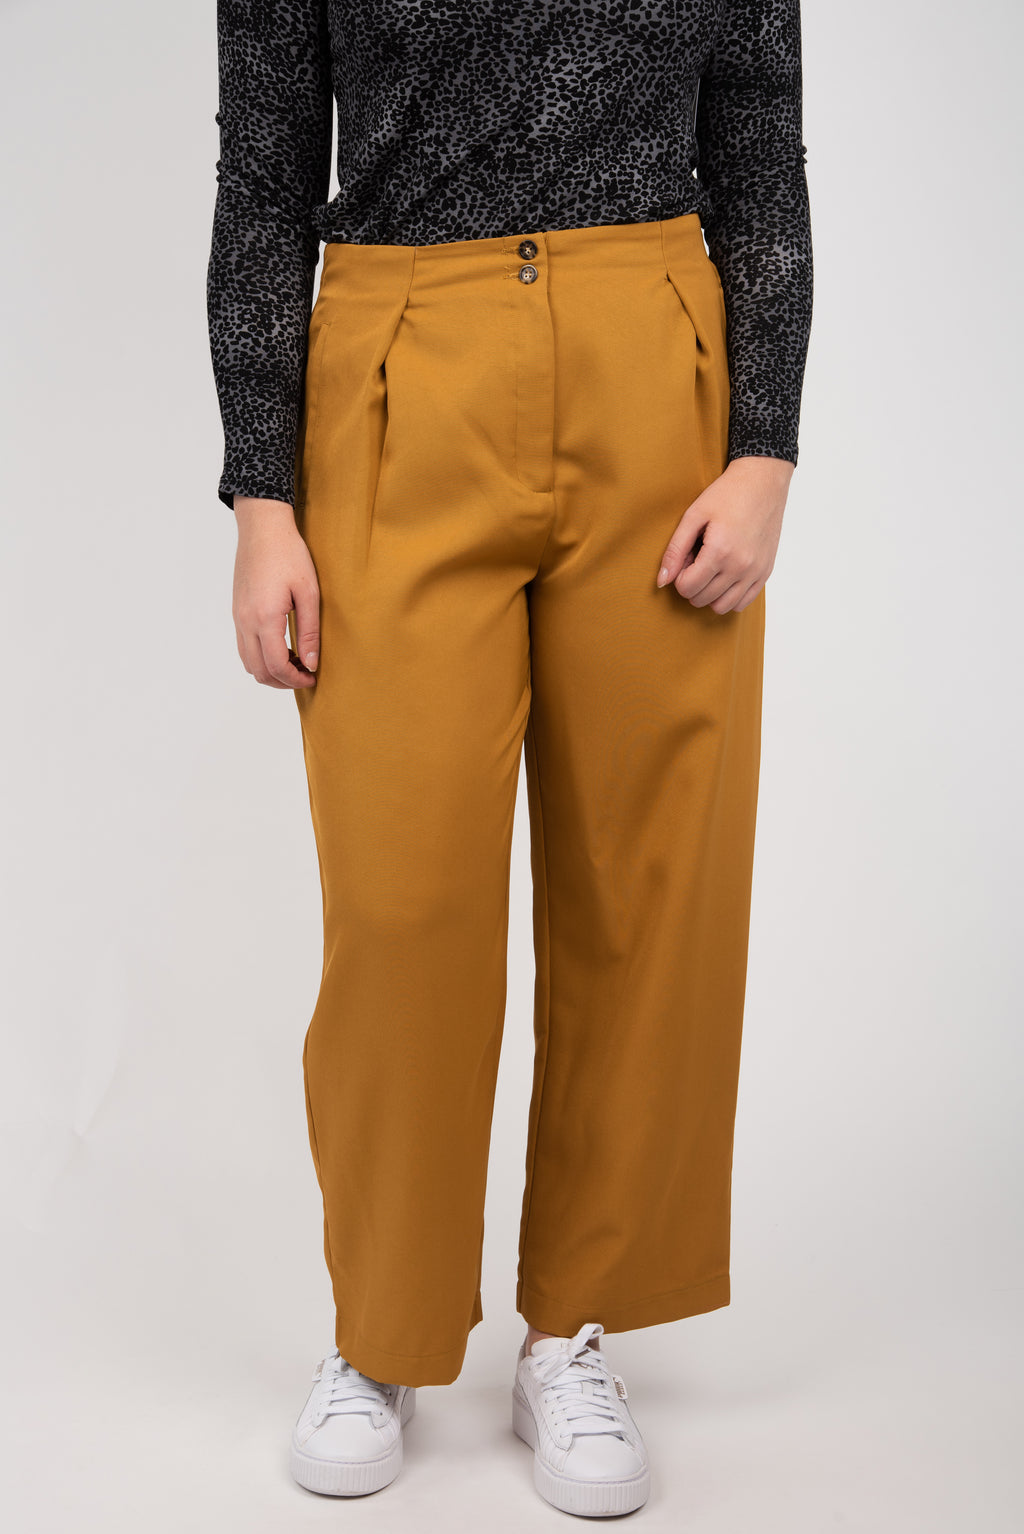 Molly Bracken Tapered Pants